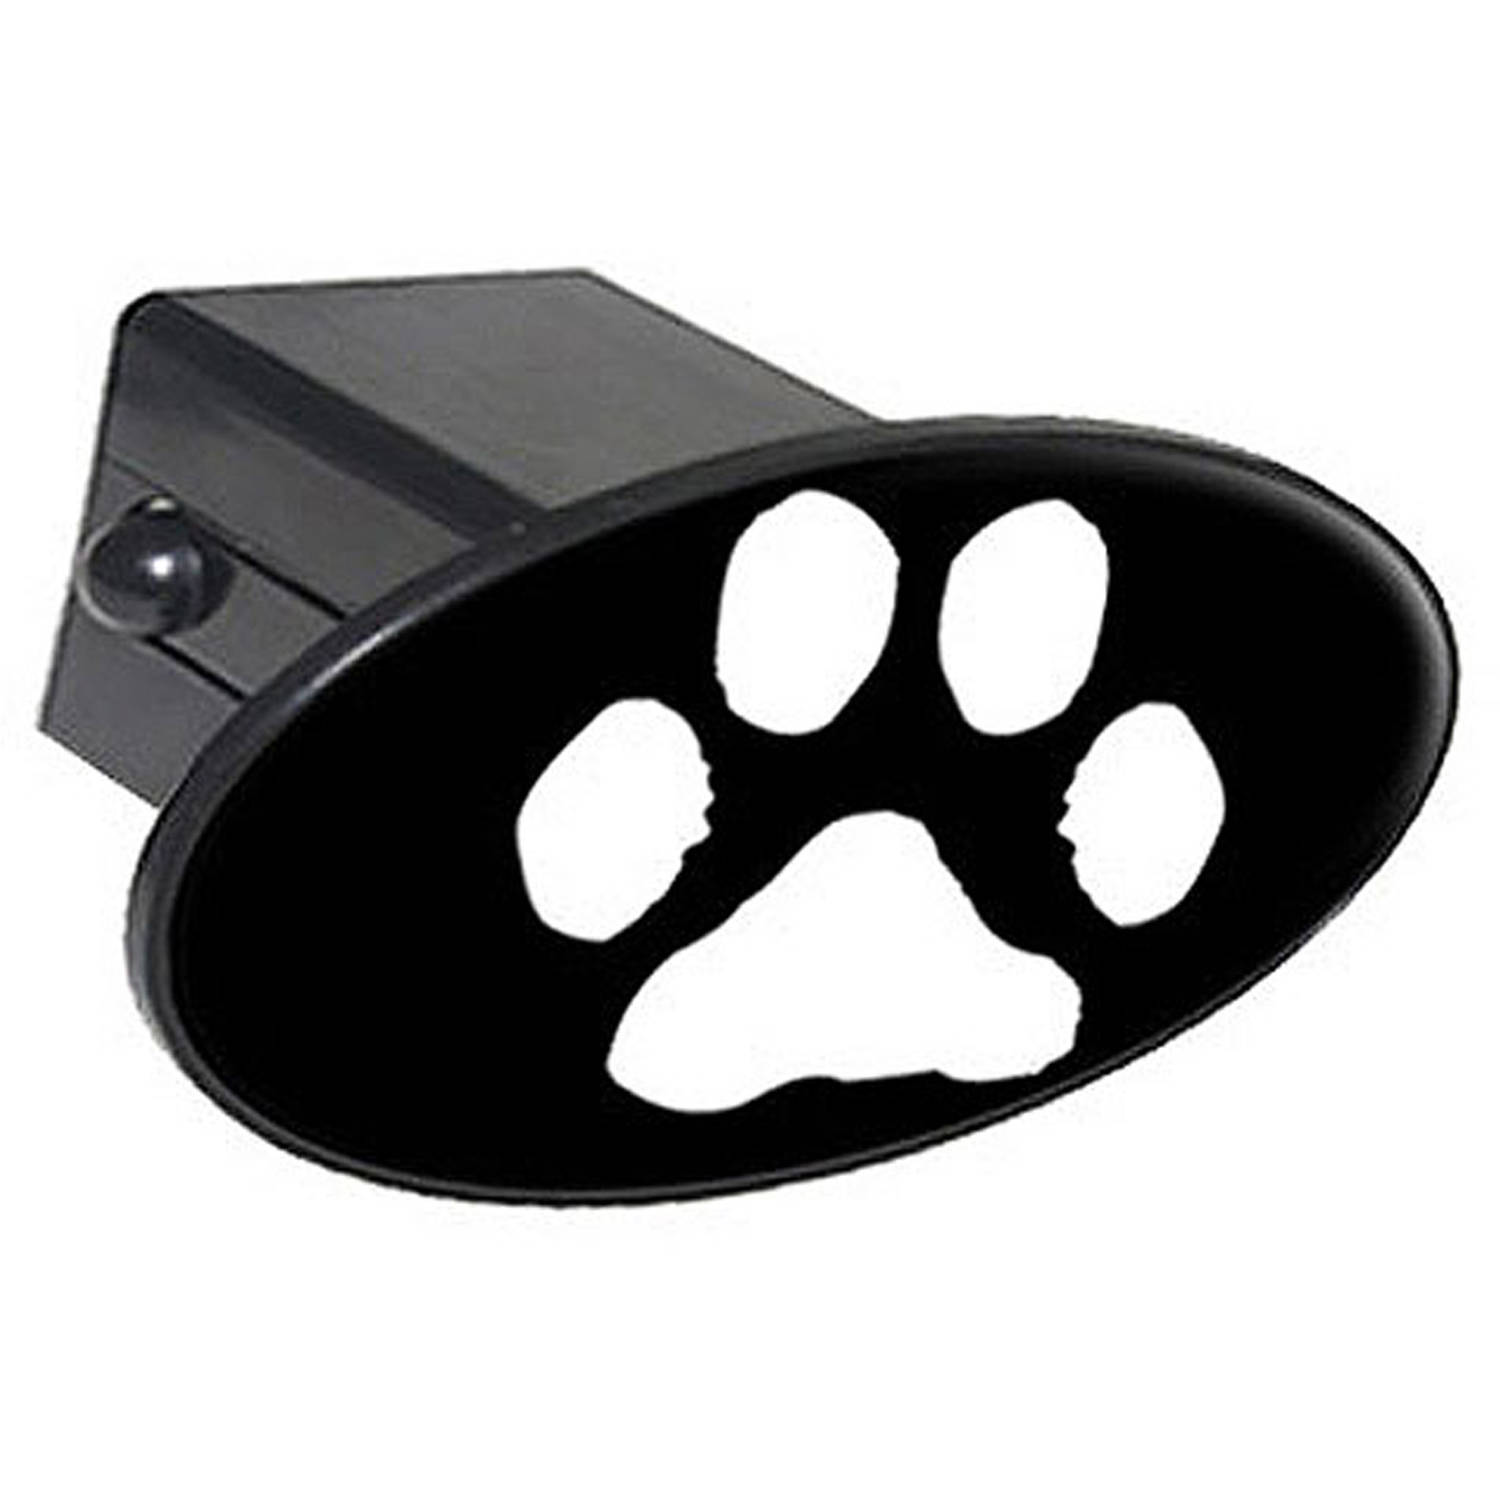 """Paw Print White On Black 2"""" Oval Tow Trailer Hitch Cover Plug Insert"""